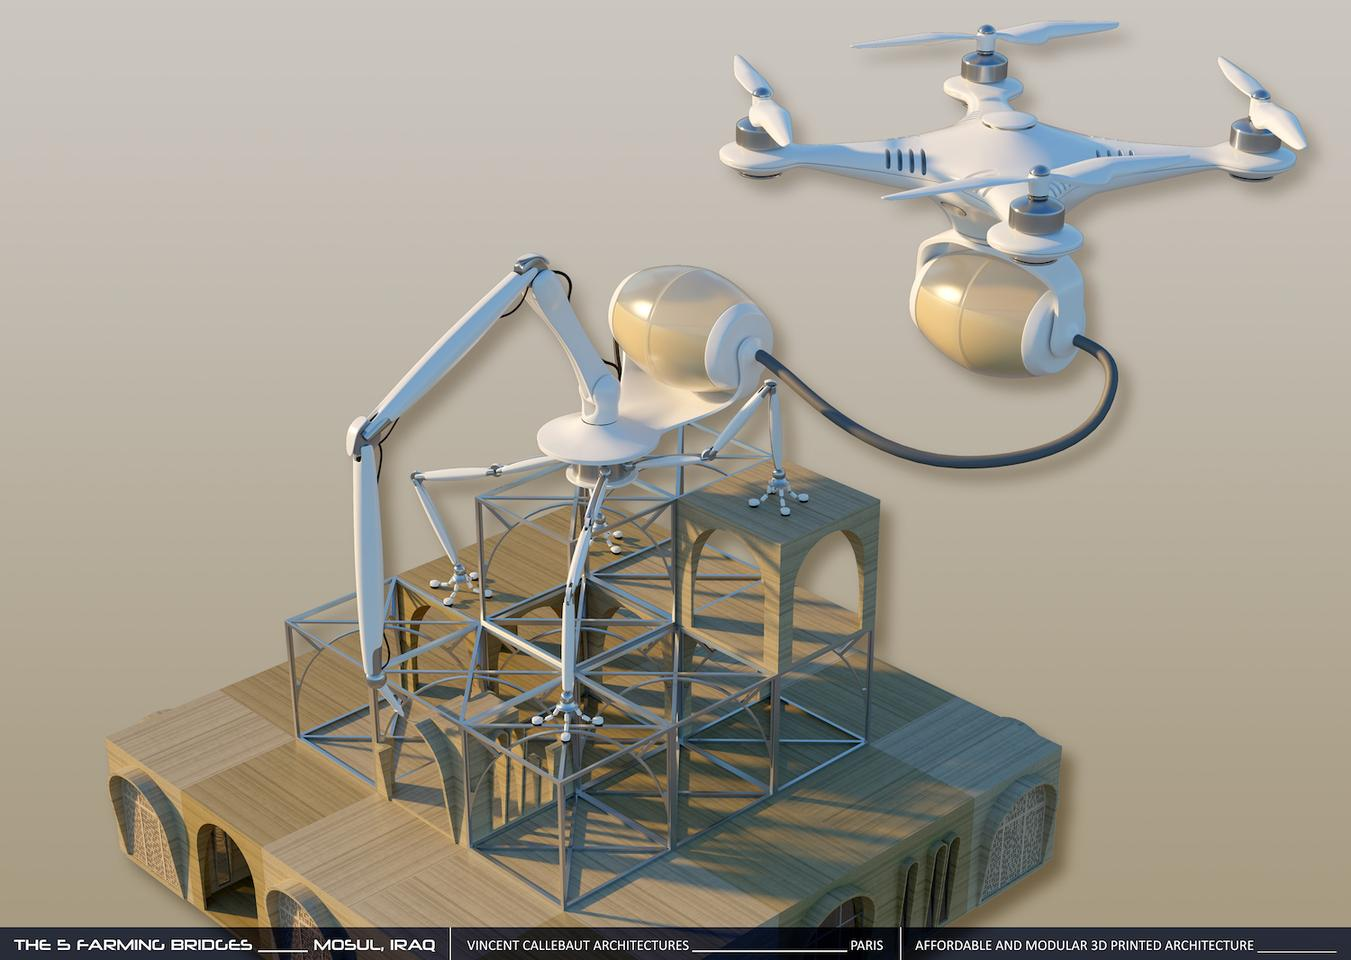 The 5 Farming Bridges proposal would involve drones transporting building material to 3D-printing robots that take the form of spiders